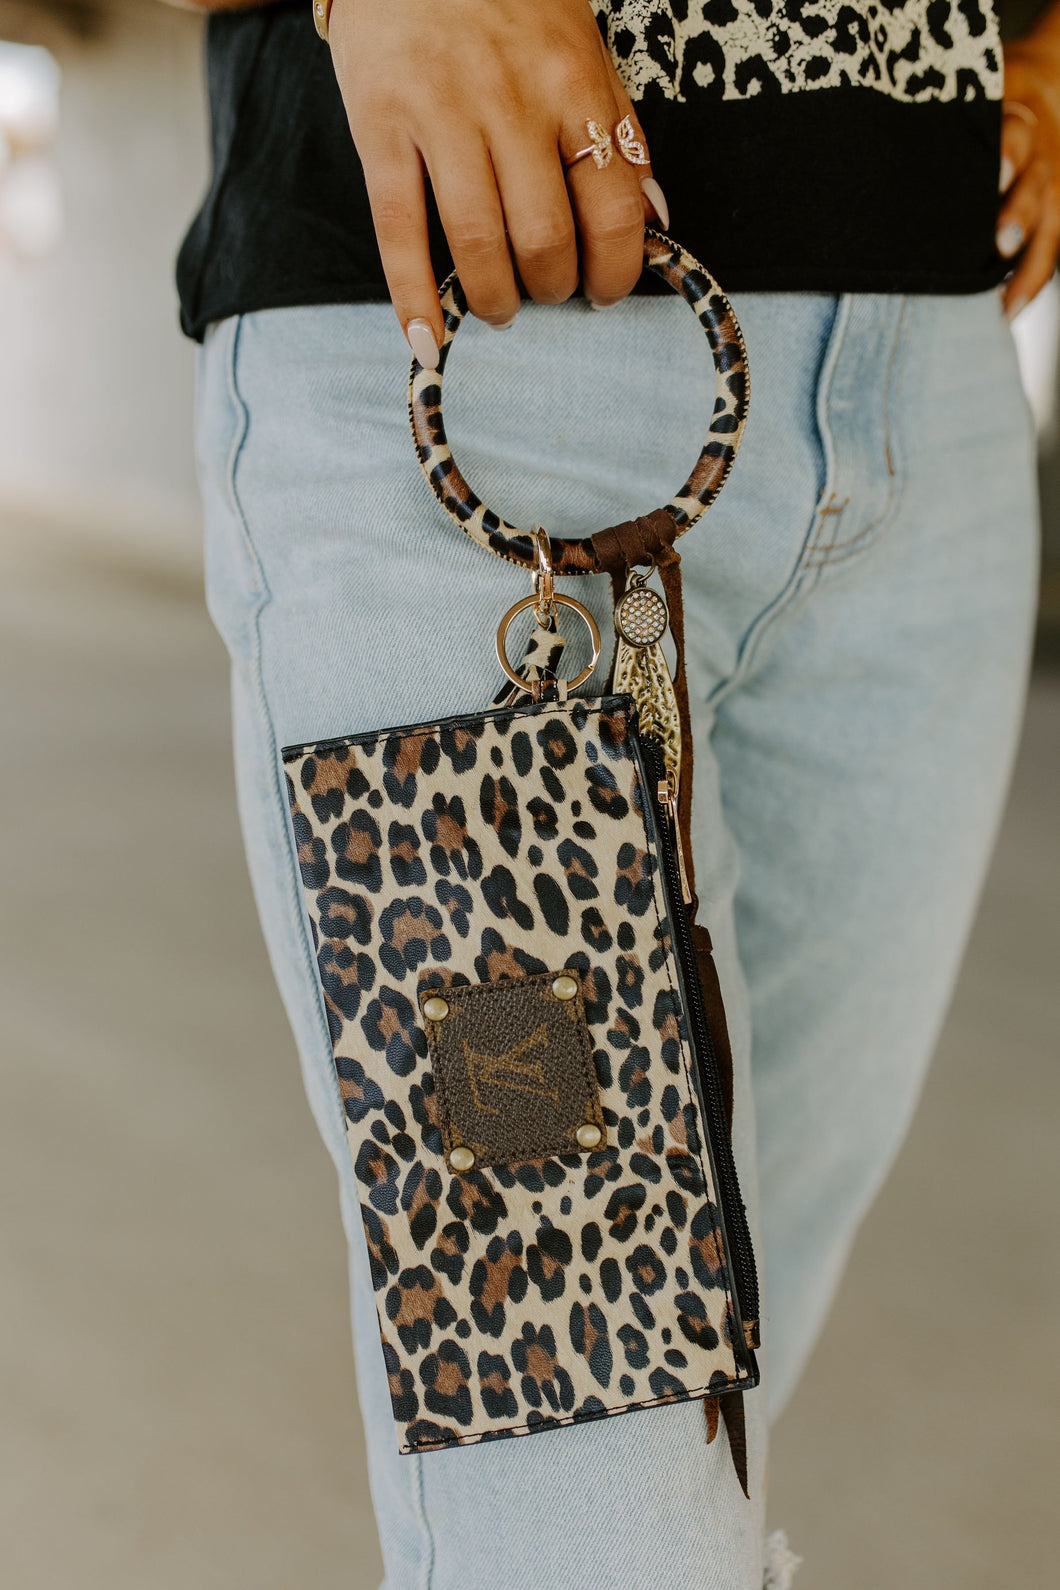 Upcycled Tan Leopard Bangle Keychain Bracelet & Wristlet Set